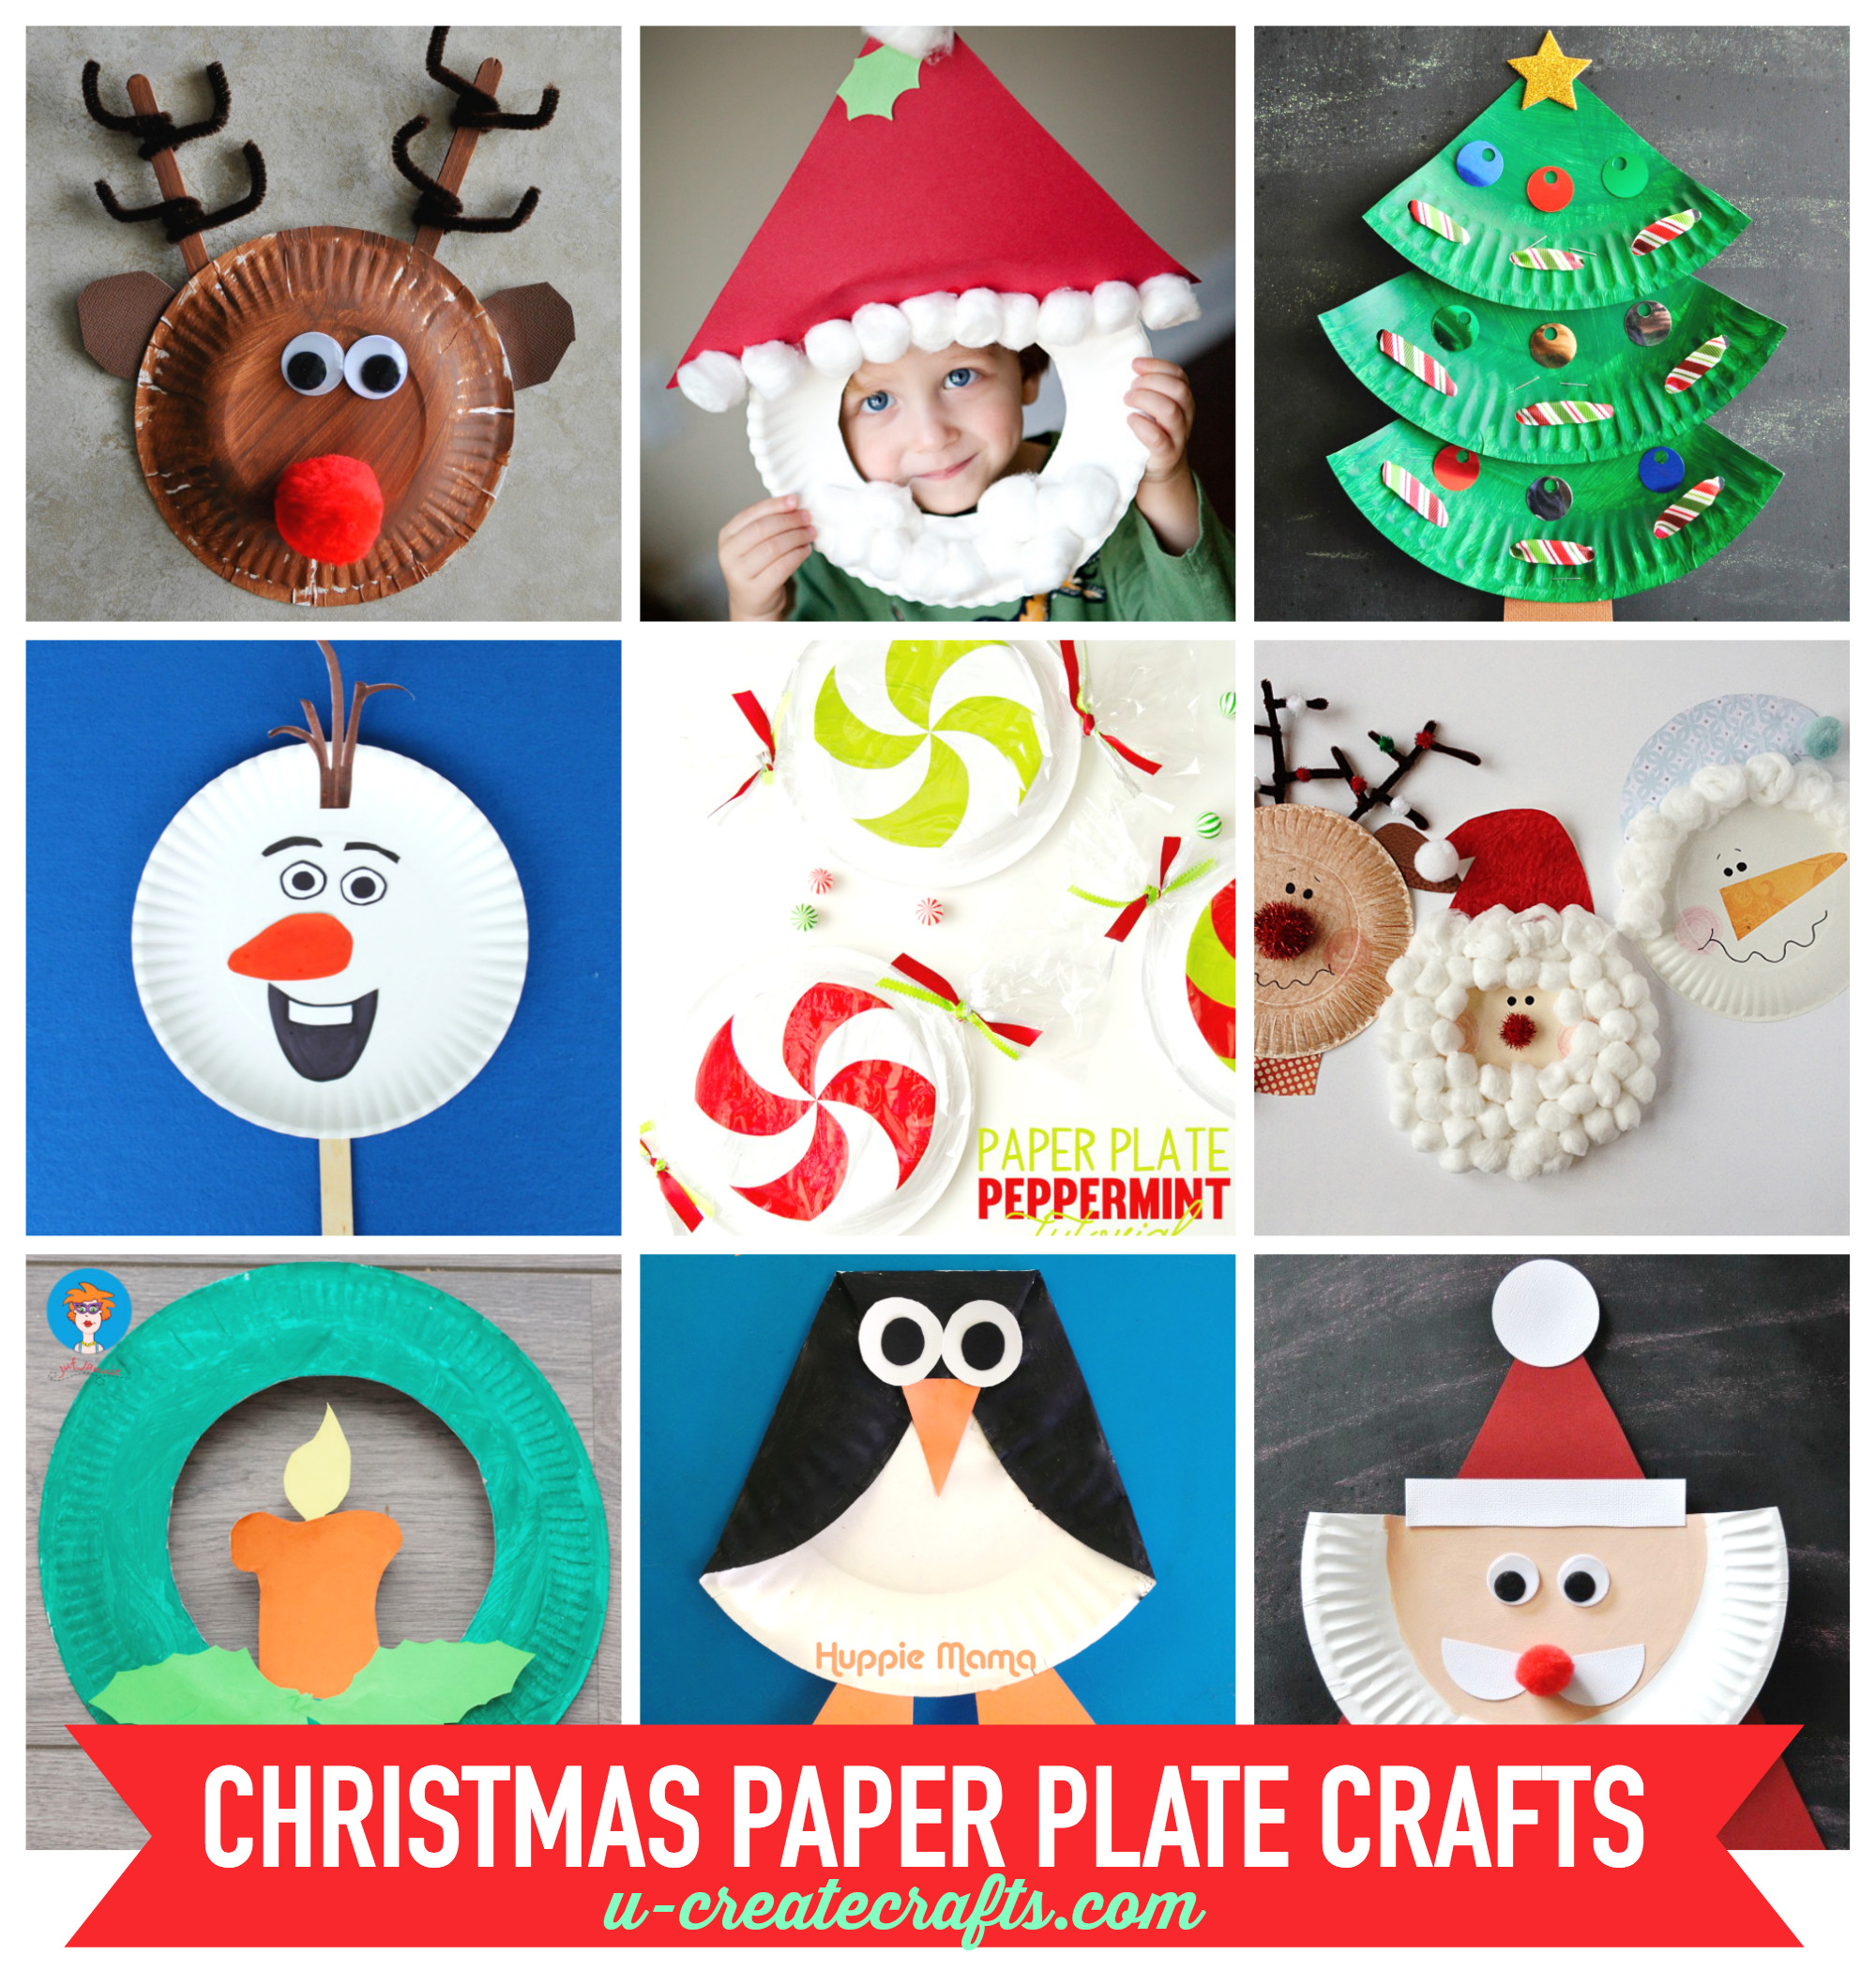 Best ideas about Christmas Craft Ideas For Children . Save or Pin Paper Plate Christmas Crafts U Create Now.